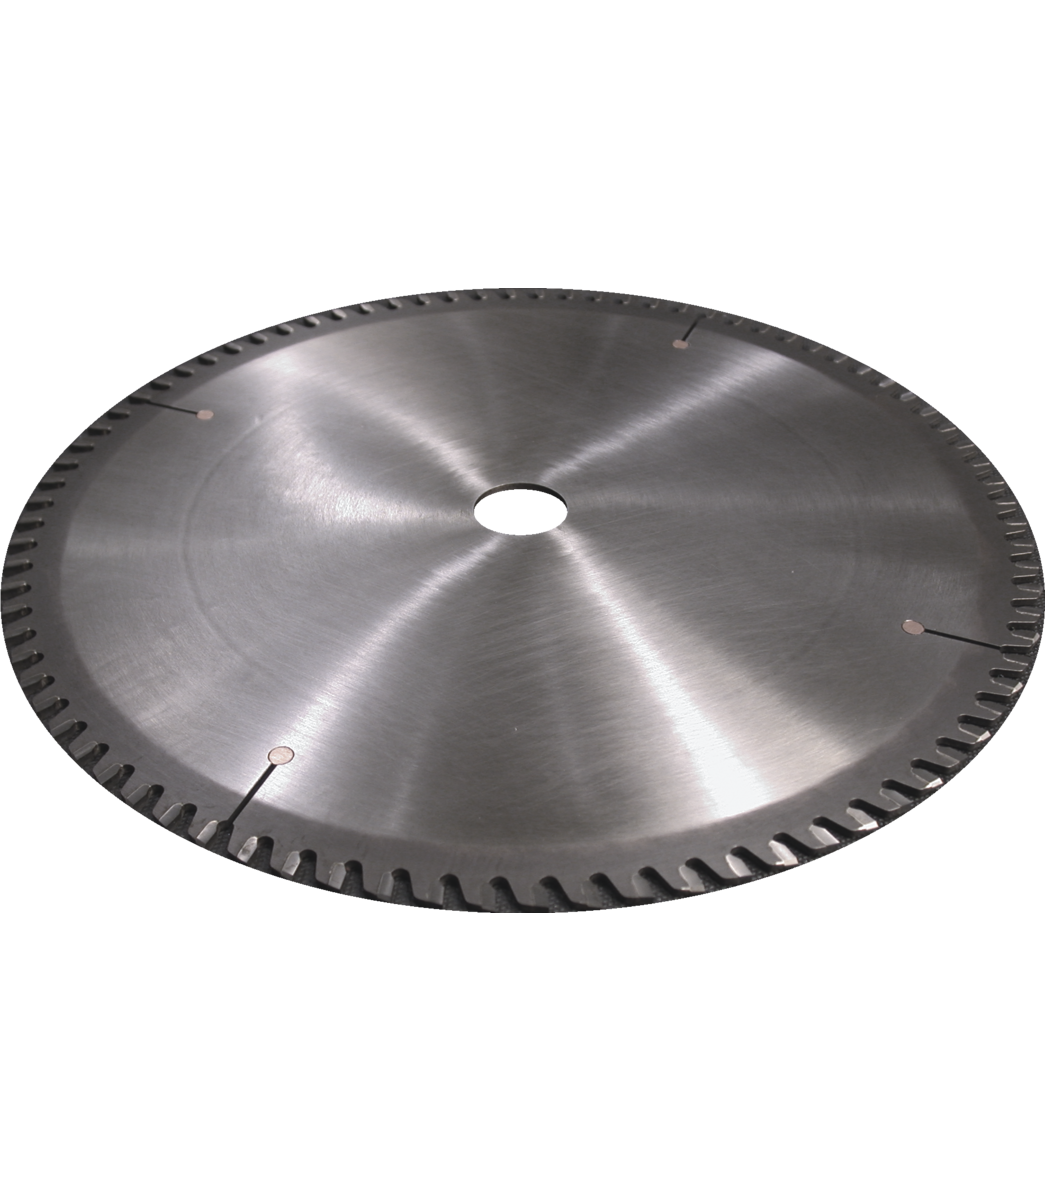 Ferrous Circular Saw Blade 350mm x 32mm x 2.5mm x 100T for J-FK350-2/4K